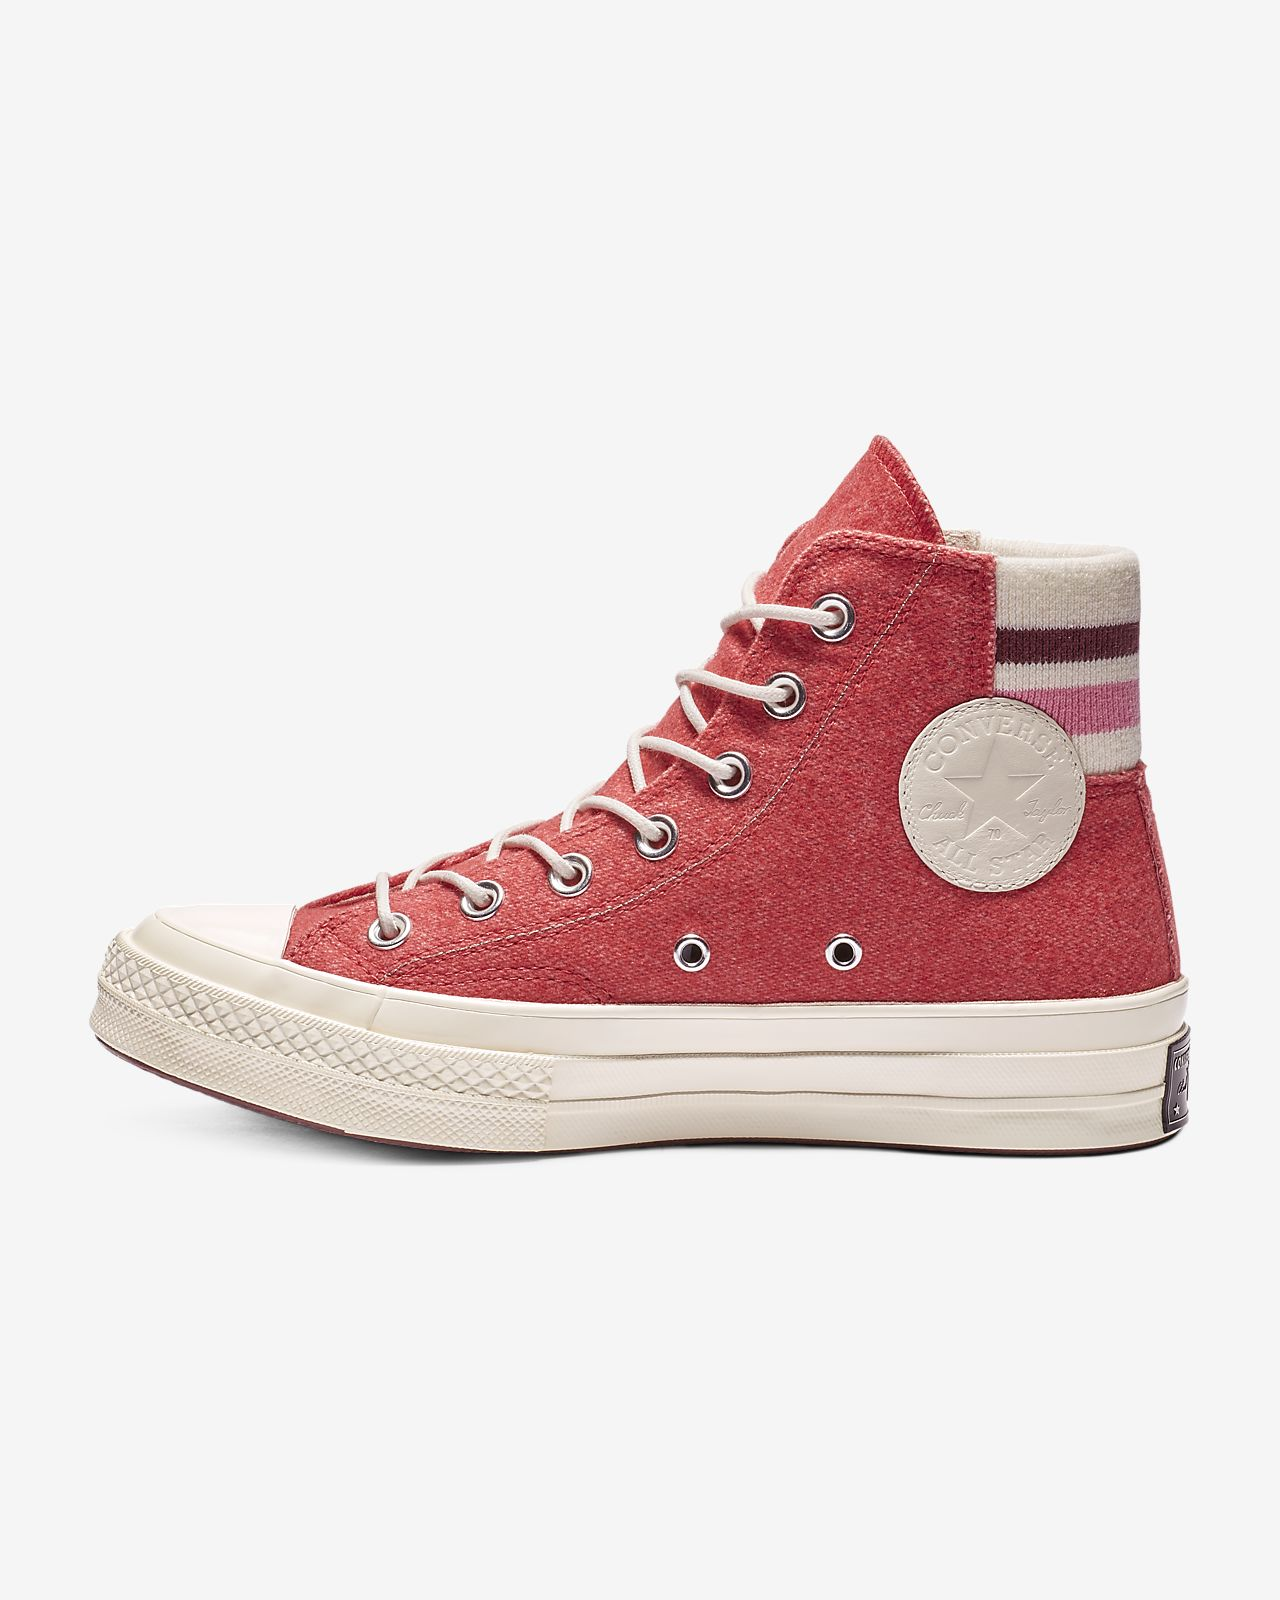 Converse Chuck 70 Retro Stripe High Top Unisex Shoe